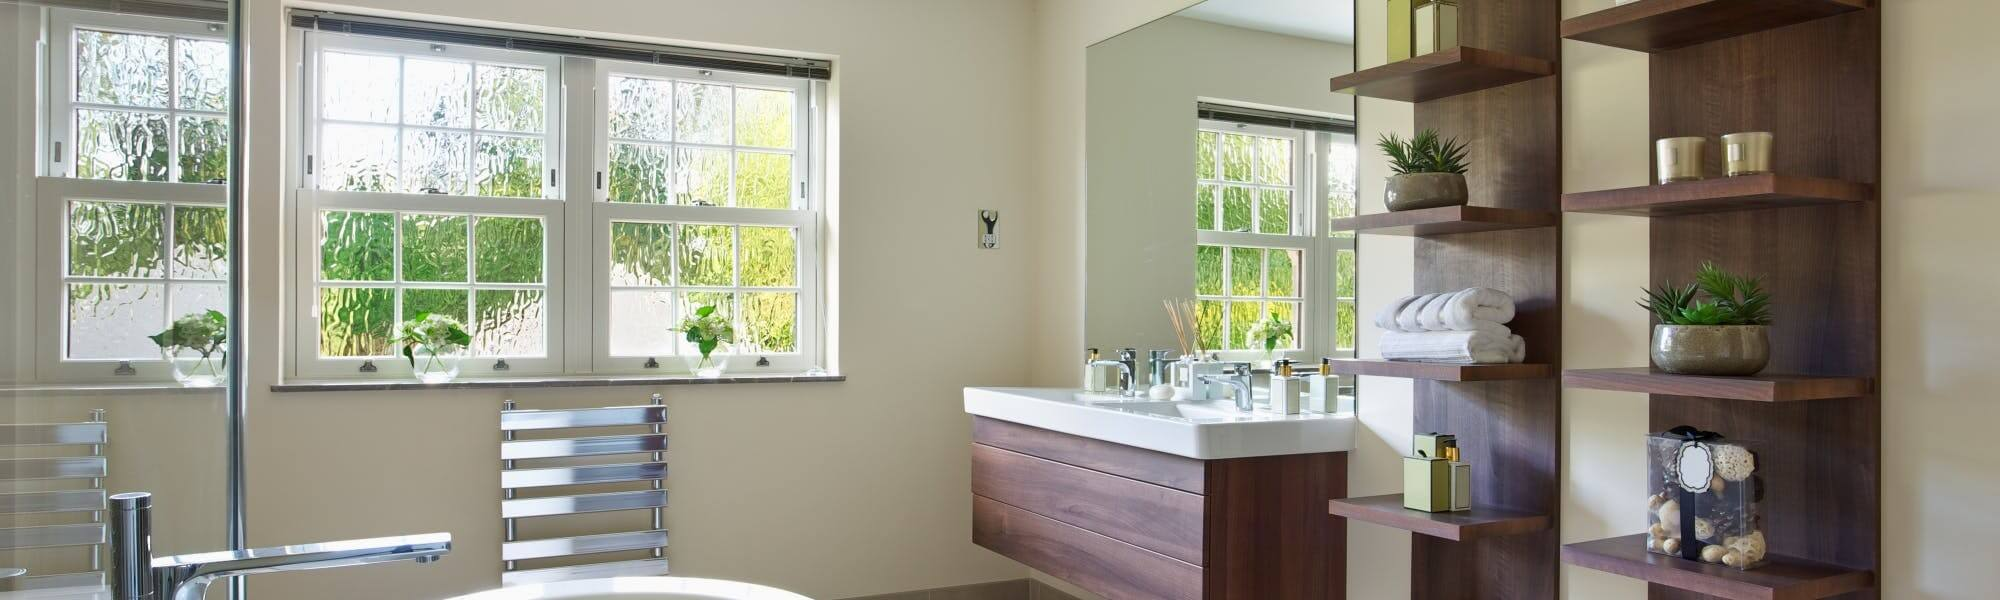 Large bathroom with installed wall radiator and bathroom sink base units furniture